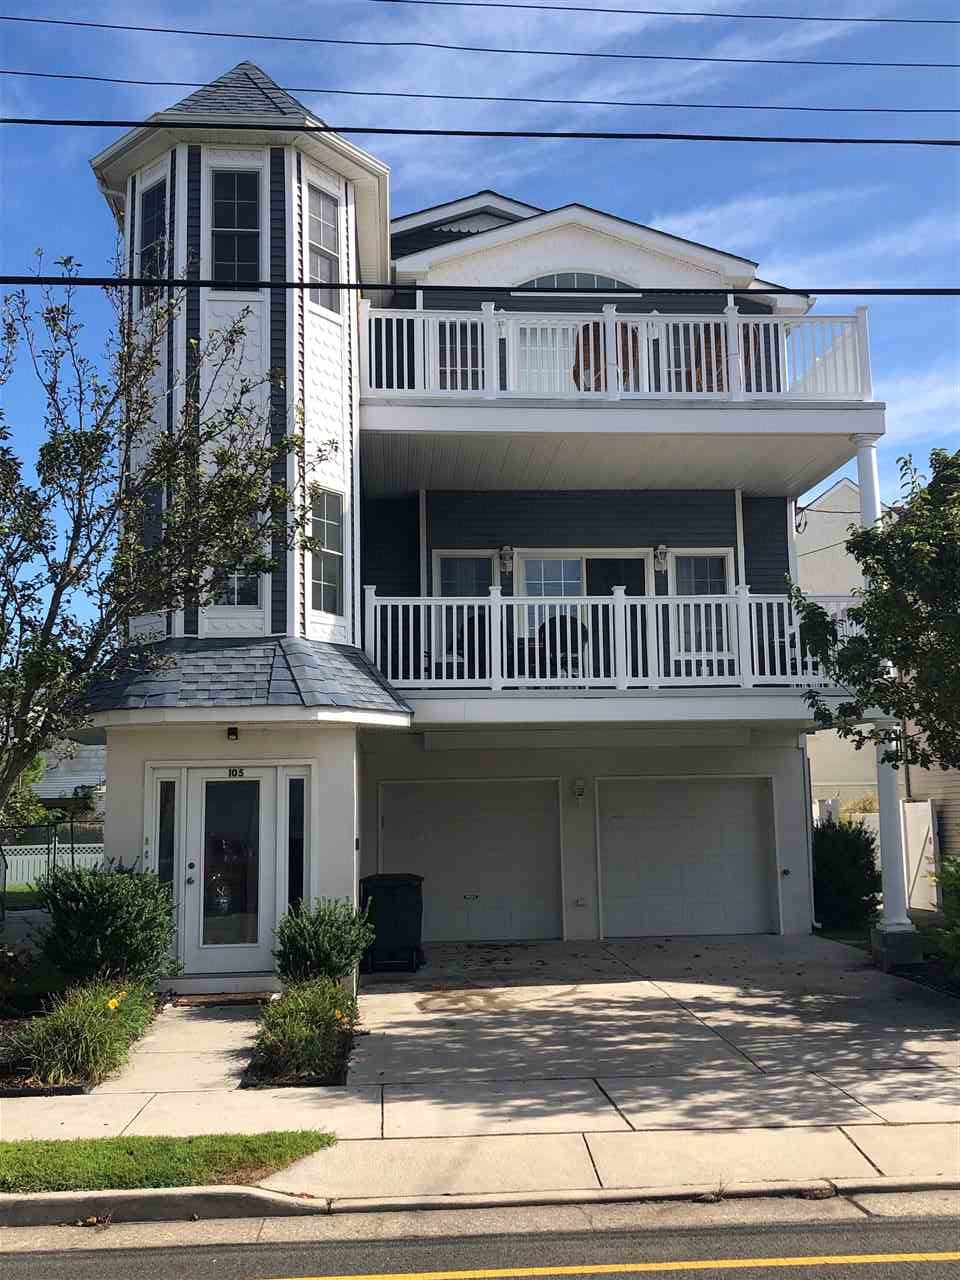 105, Unit 100 Fir Bennett, Wildwood